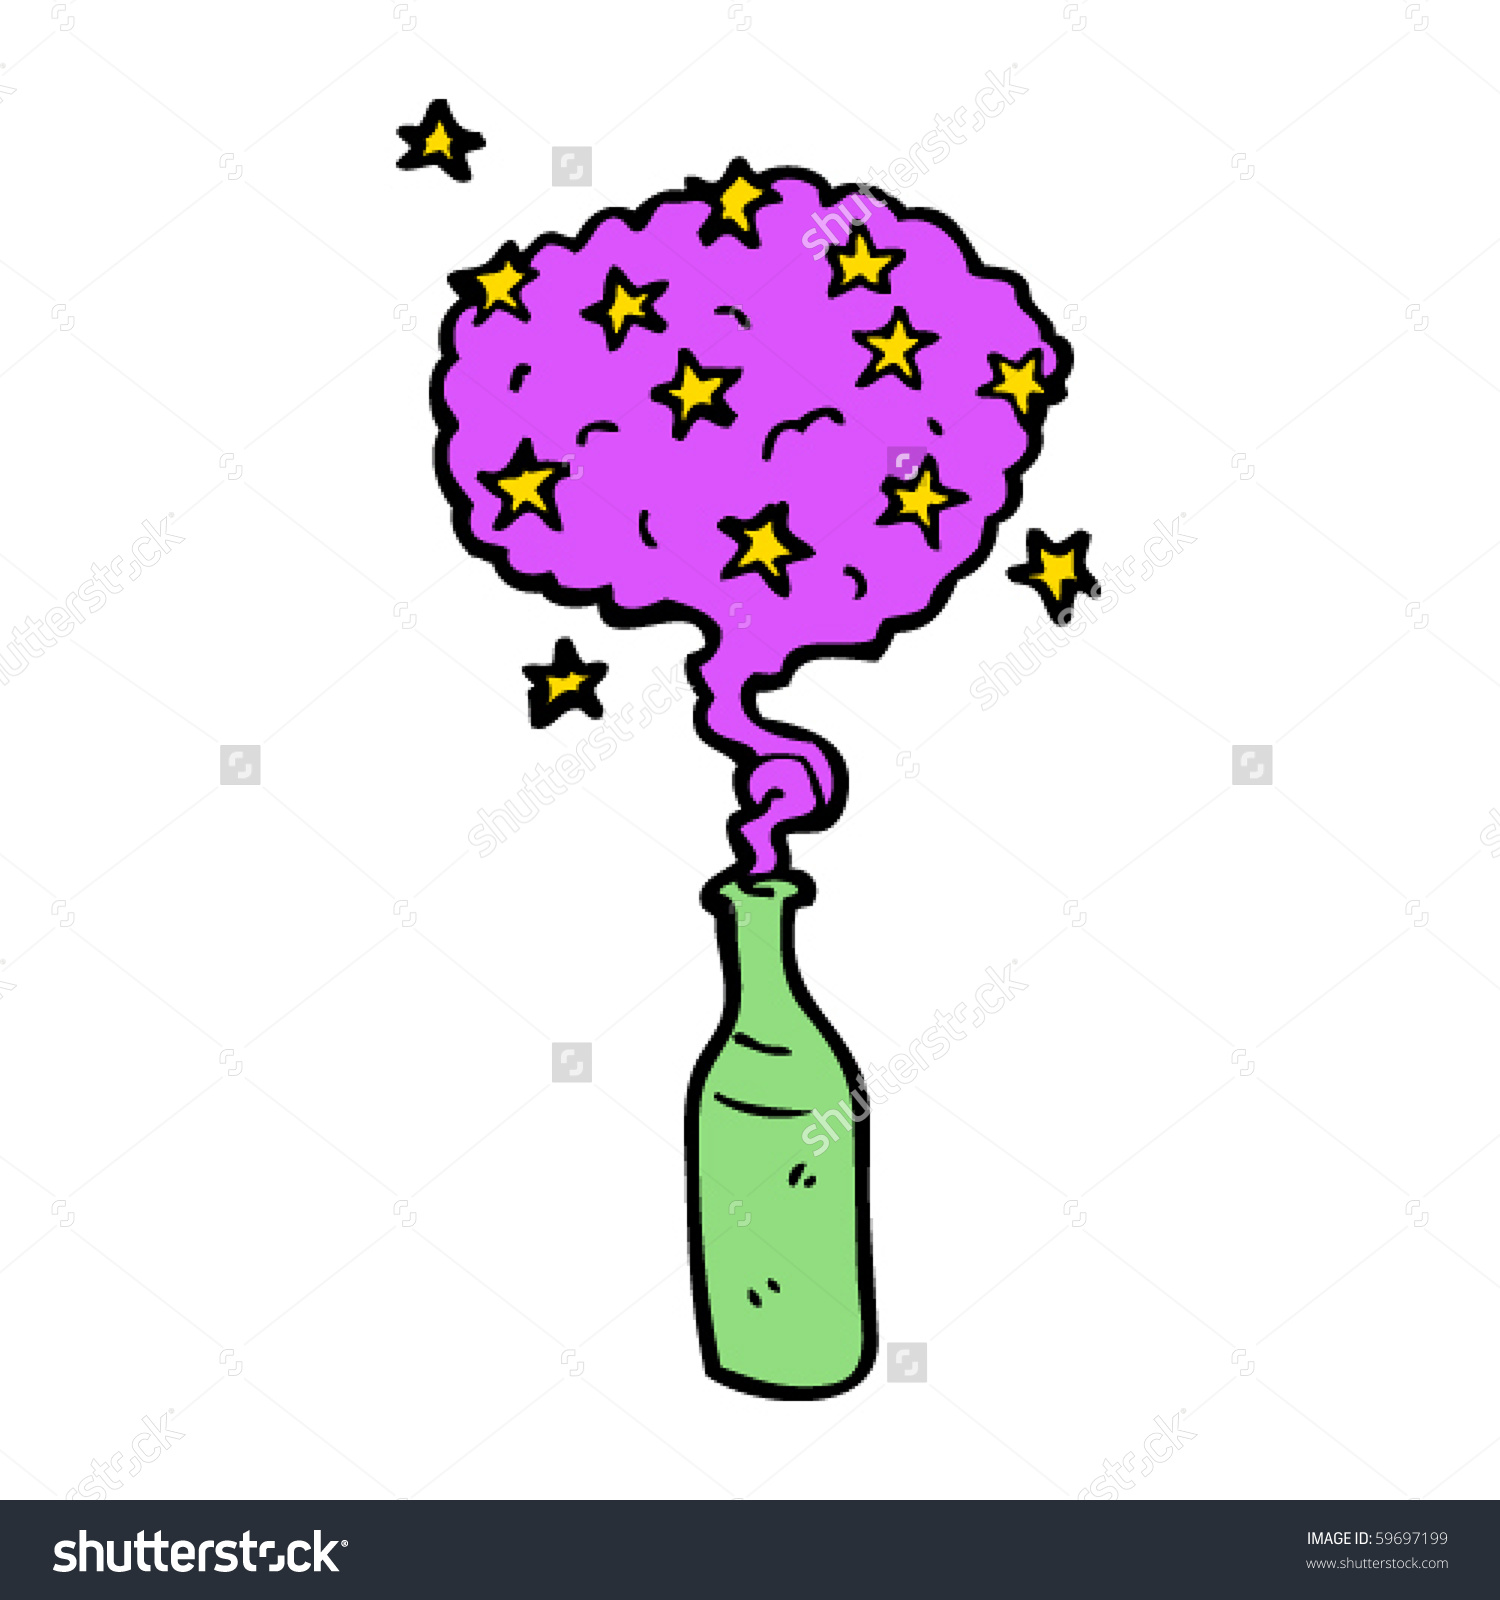 Genie Bottle Cartoon Stock Vector 59697199.